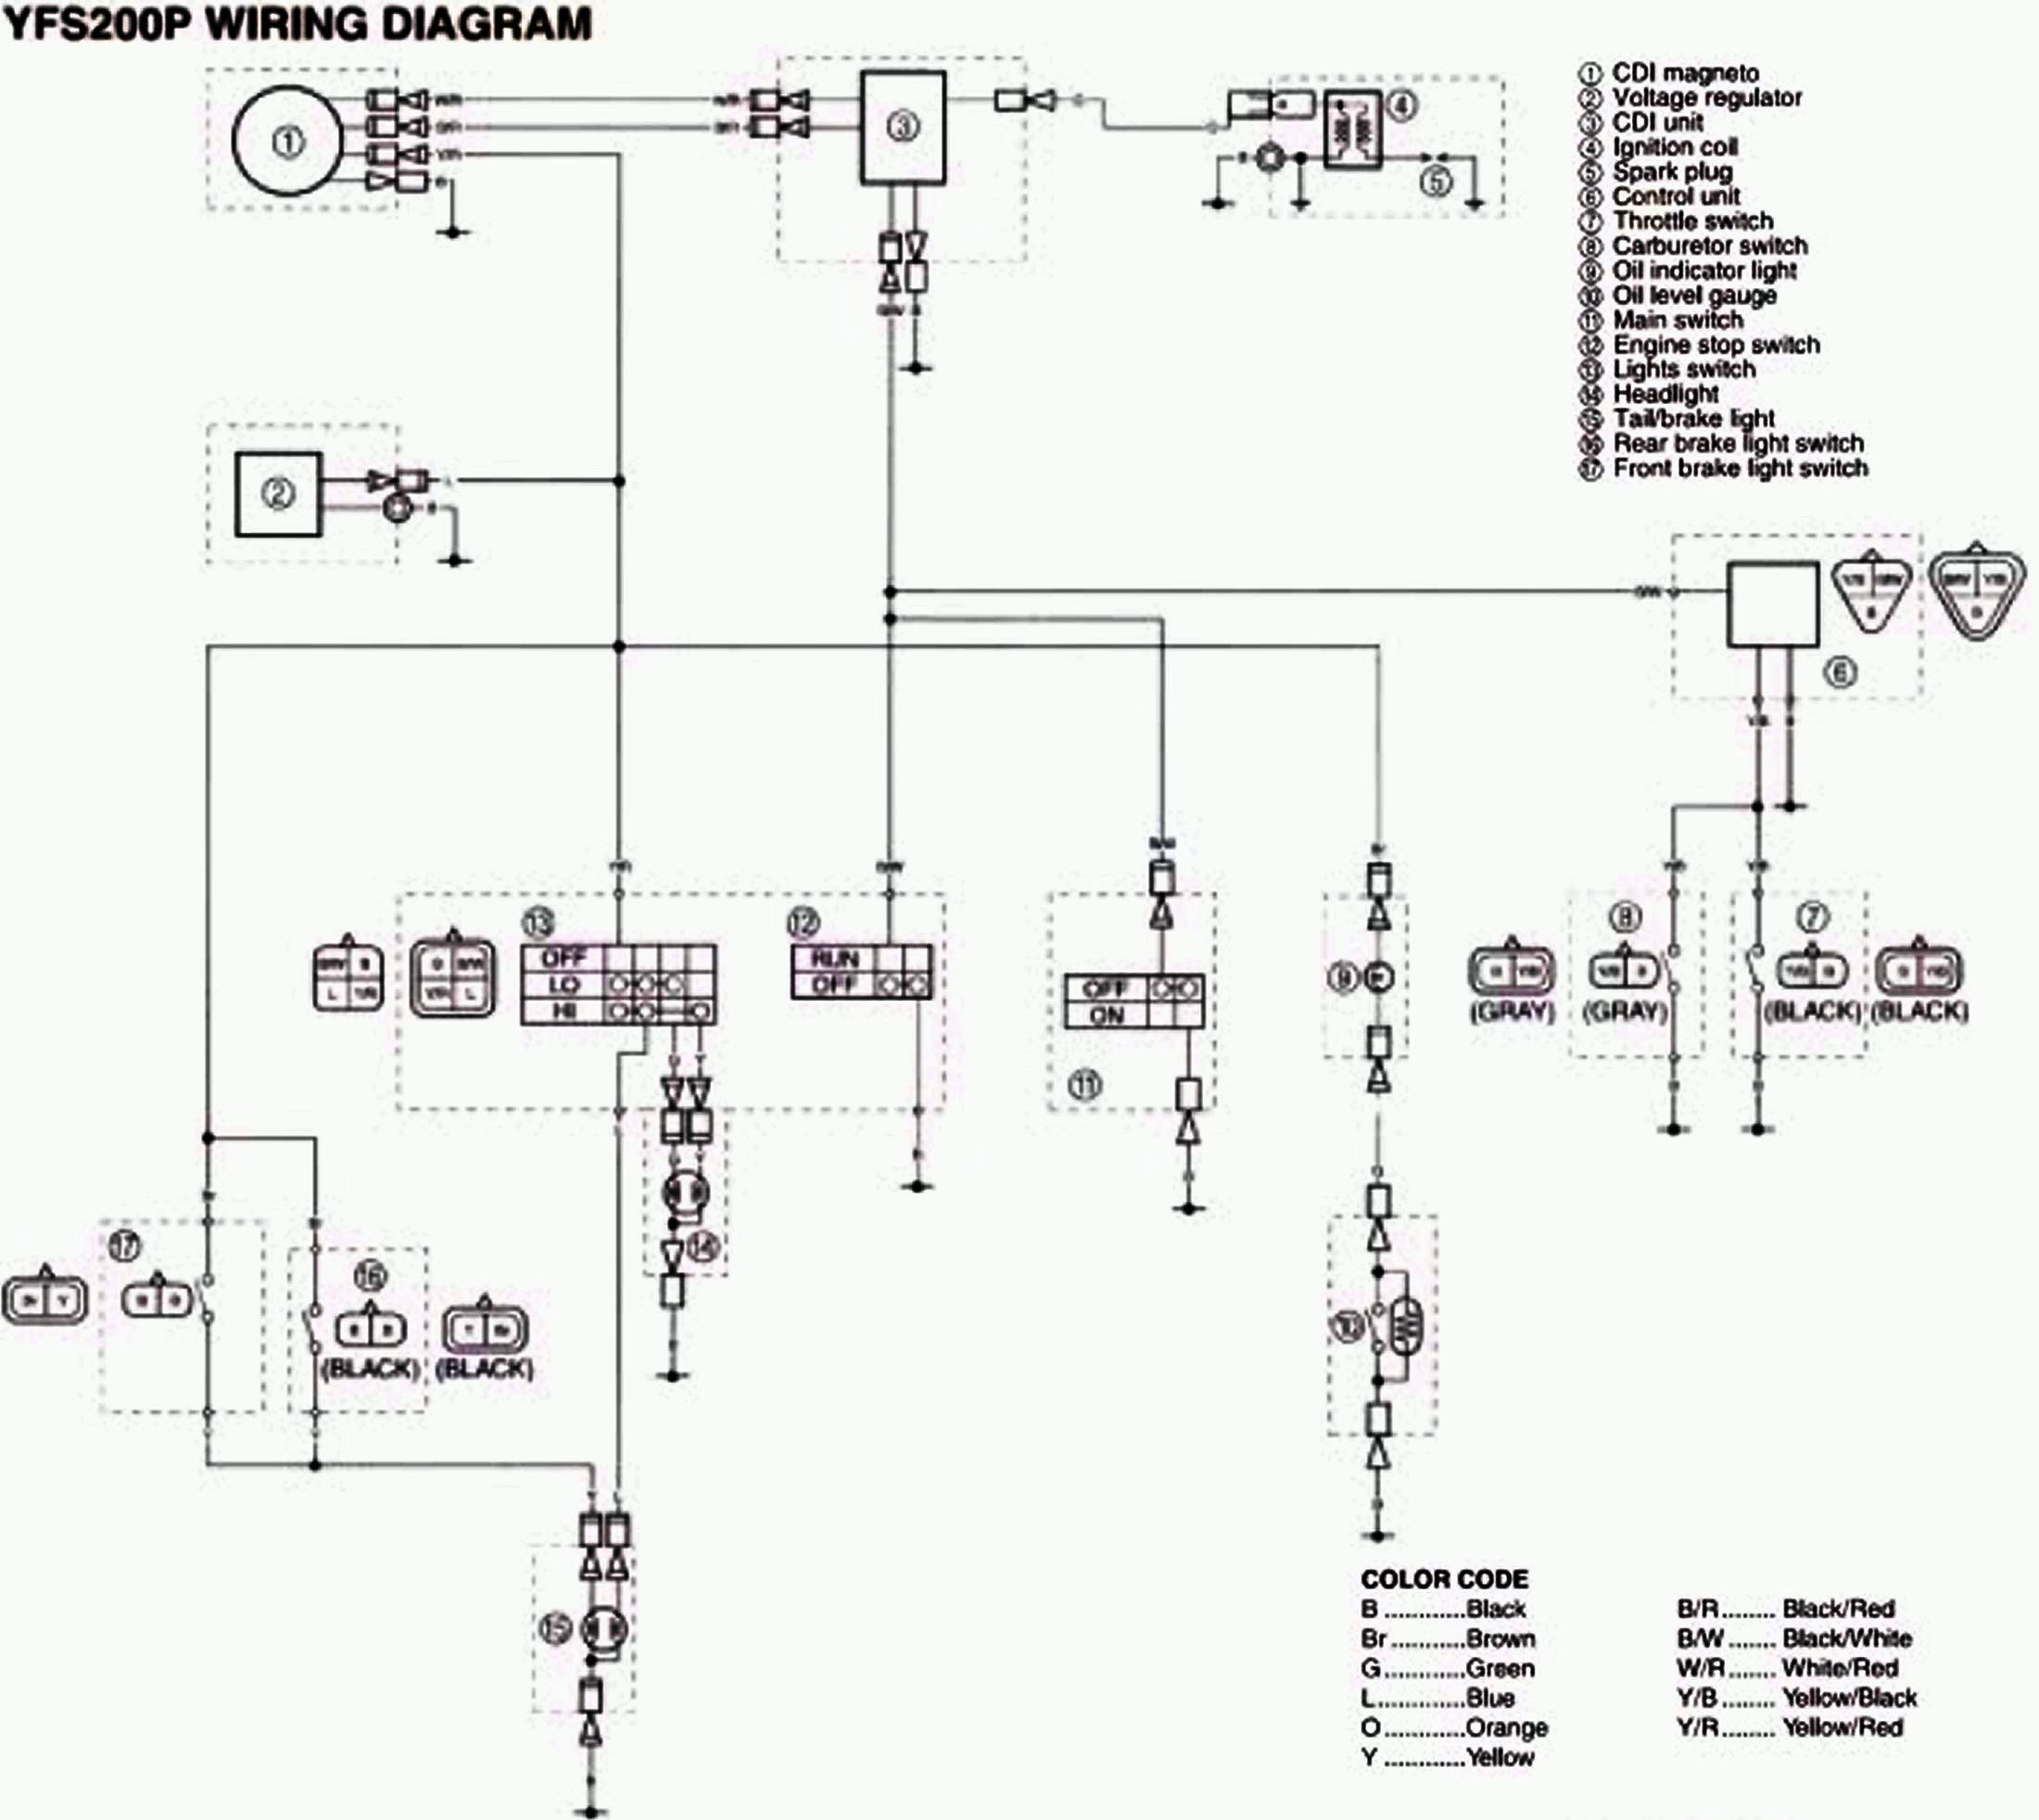 yamaha blaster light wiring wiring diagram full version hd quality wiring  diagram - tatediagram.as4a.fr  diagram database - as4a.fr